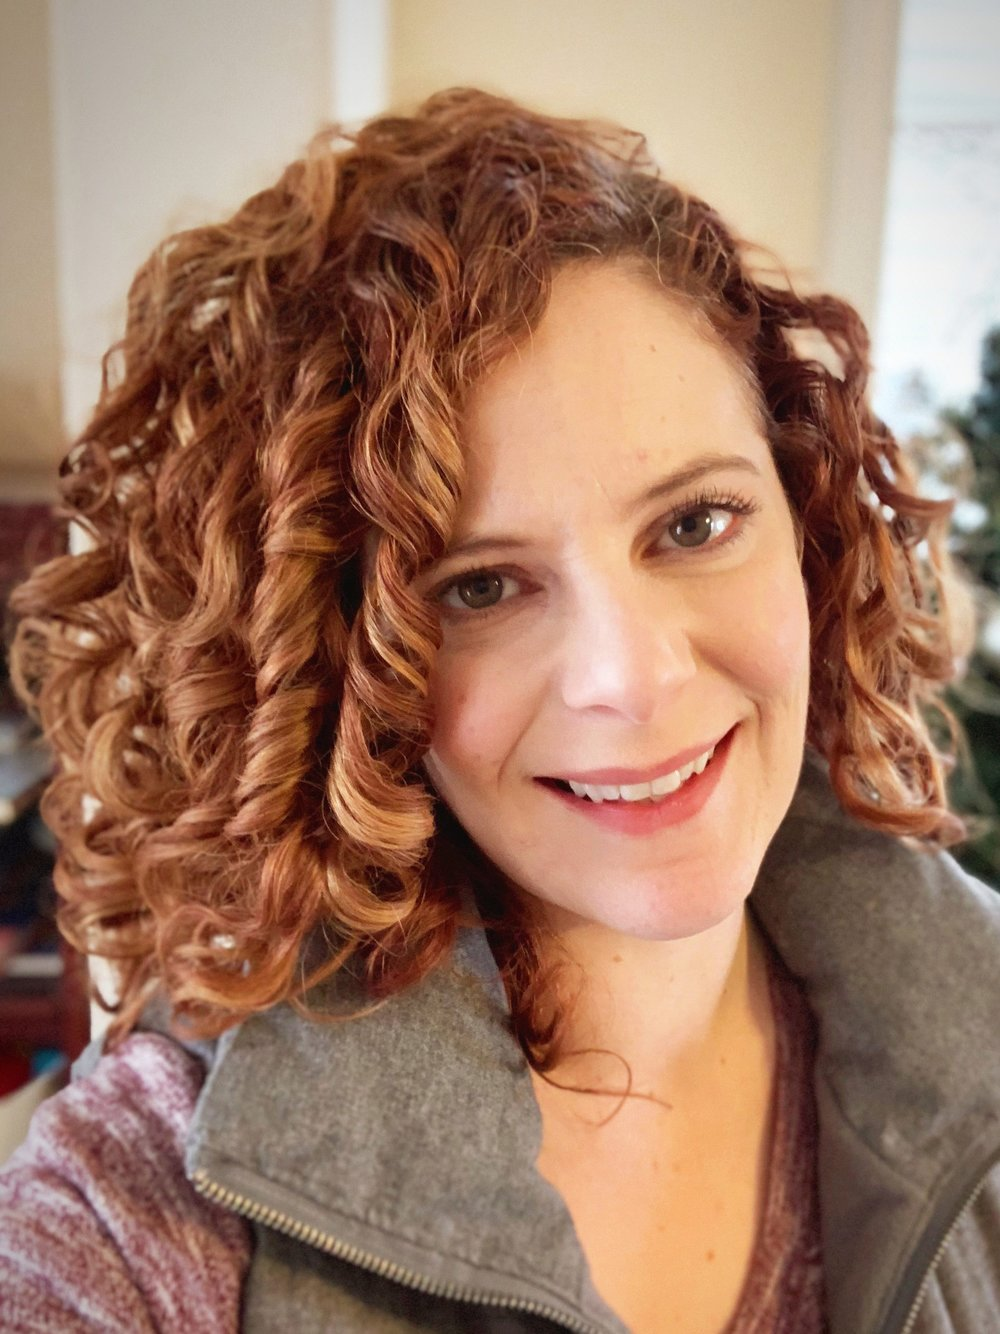 Sarah Vendittelli of Thoroughly Curly Designs, specializing in branding, print, and web design for creatively conscious small businesses.